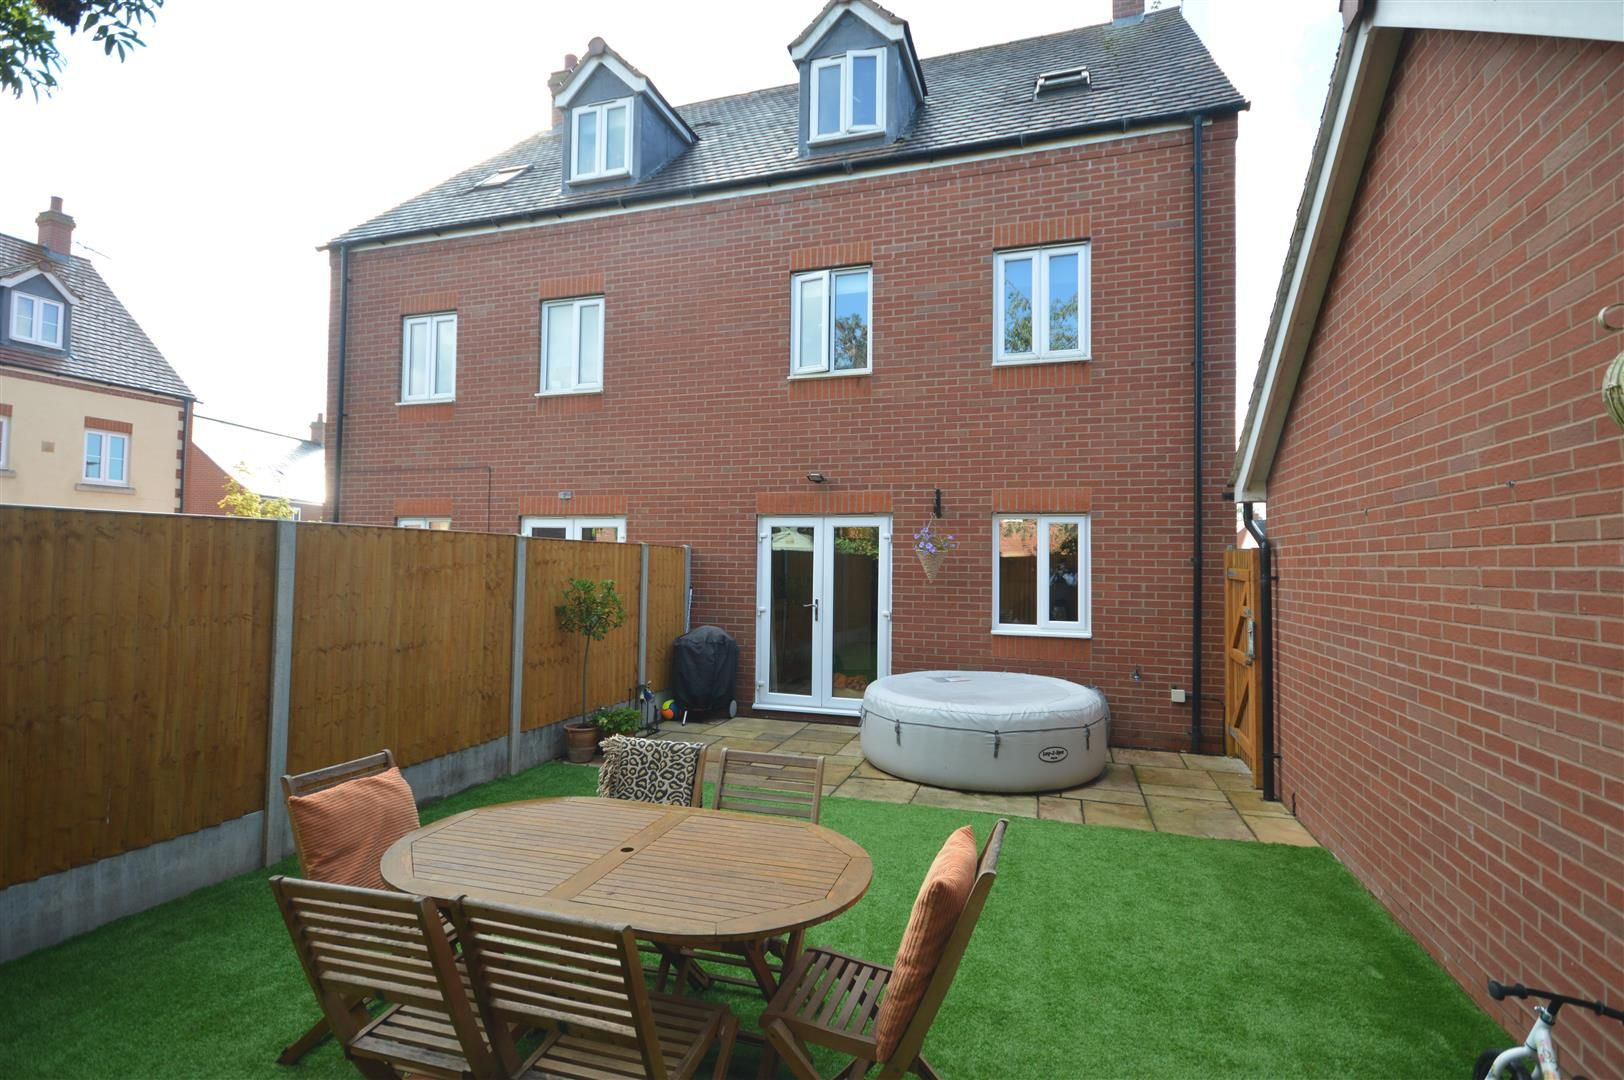 4 bed semi-detached for sale in Leominster  - Property Image 19